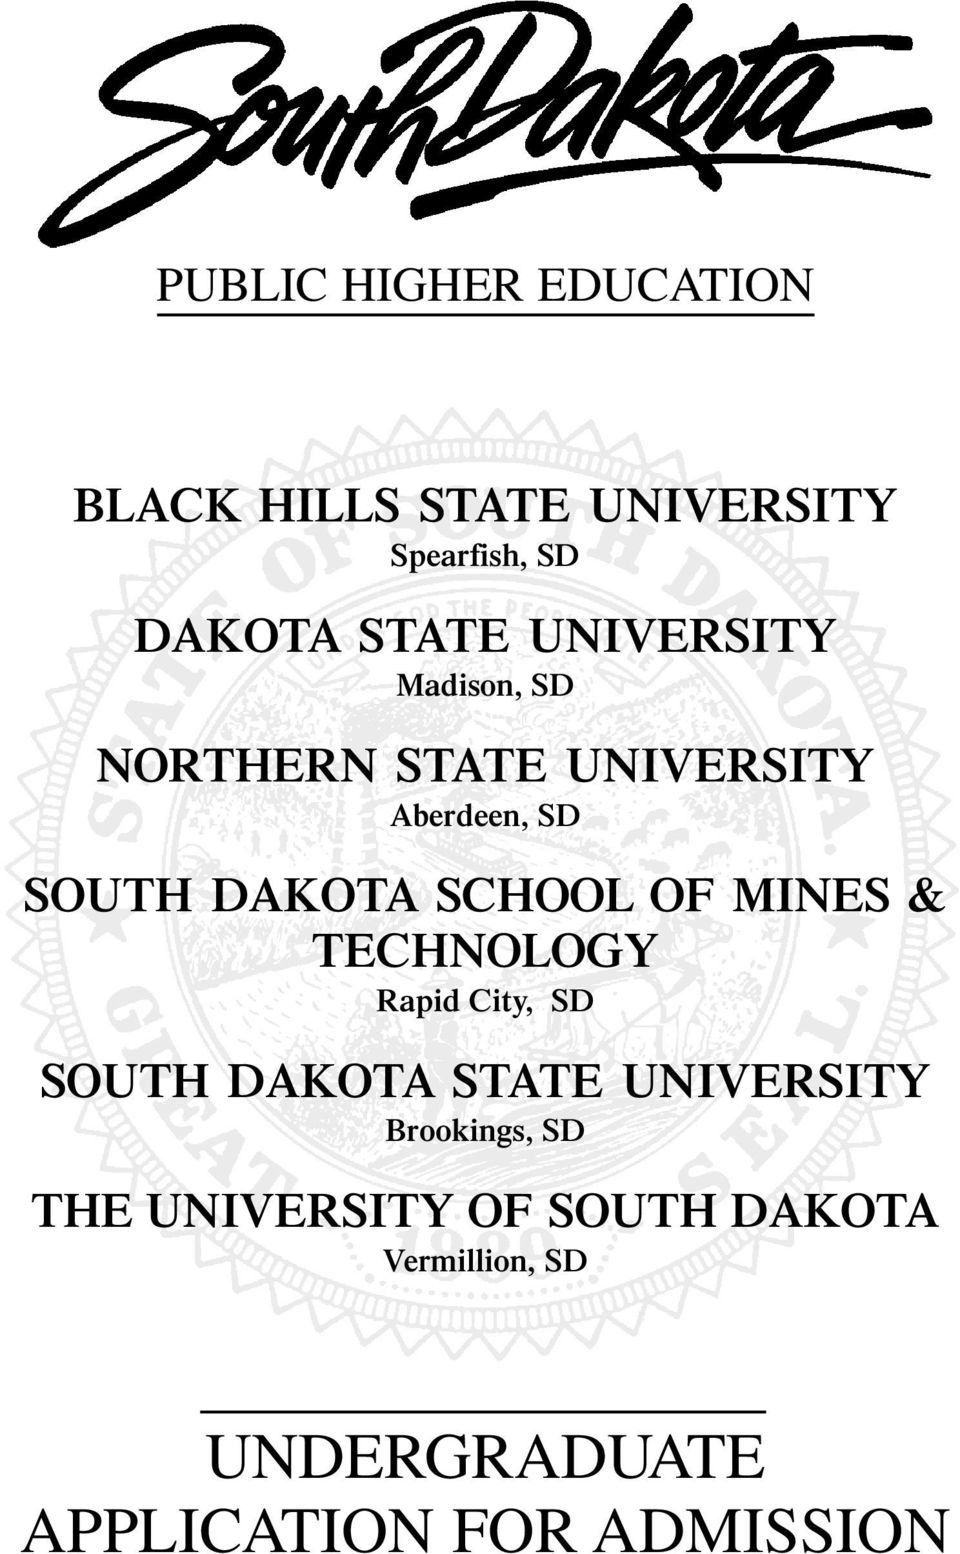 OF MINES & TECHNOLOGY Rapid City, SD SOUTH DAKOTA STATE UNIVERSITY Brookings, SD